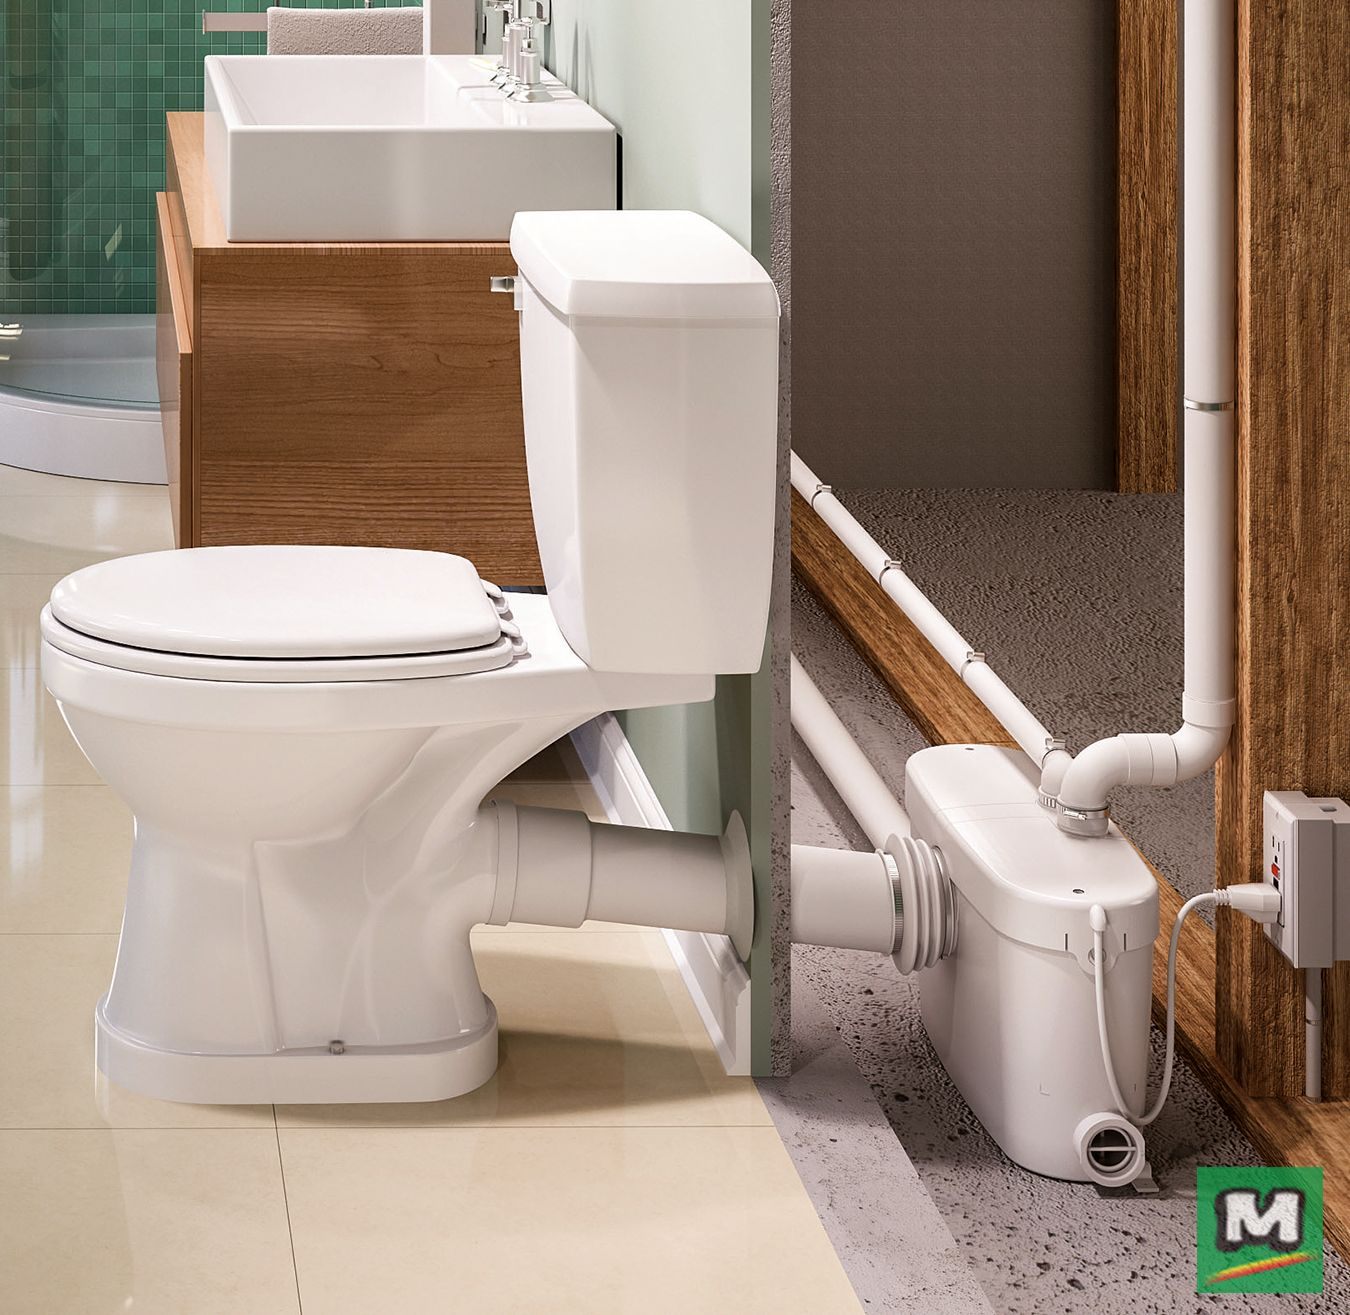 Install a basement bathroom without the need to break concrete! The SaniPro  Macerating Toilet System is a breeze to install virtually anywhere with a  power ...